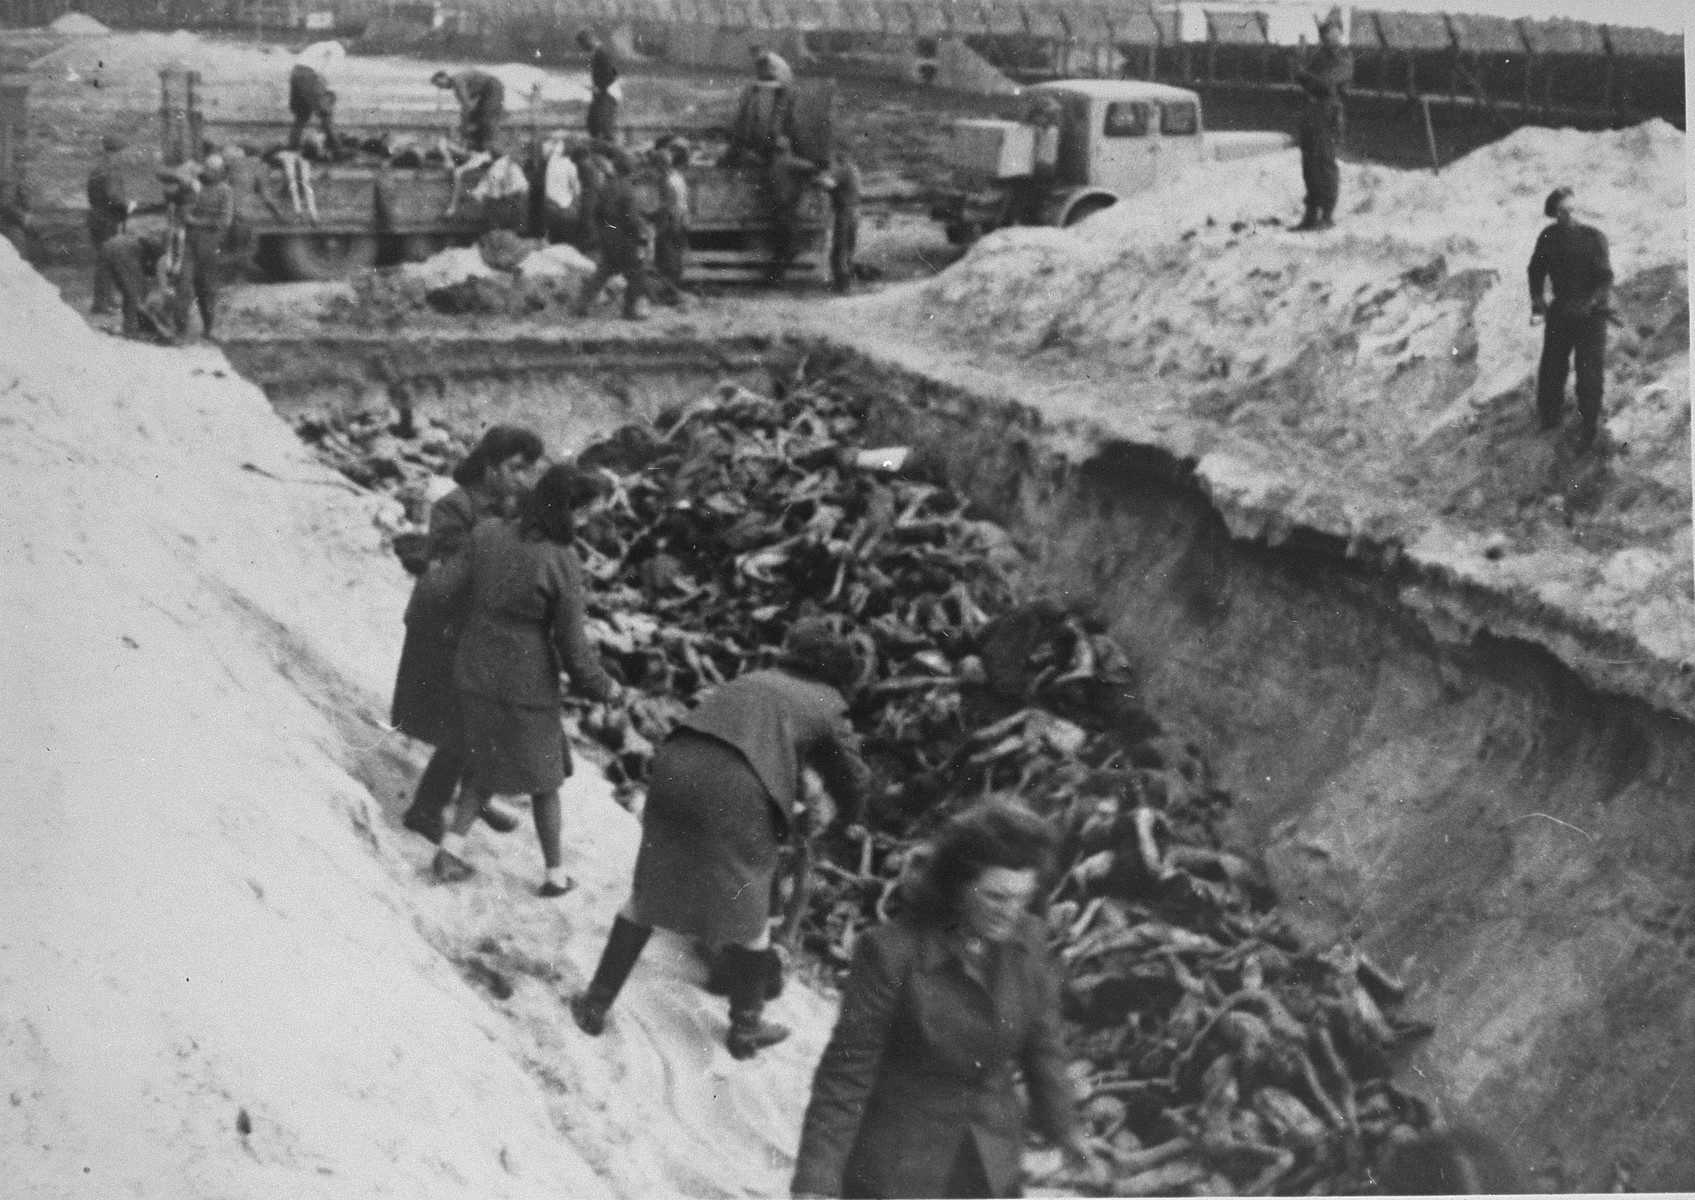 Former female camp personnel unload and bury prisoners' corpses in a mass grave.